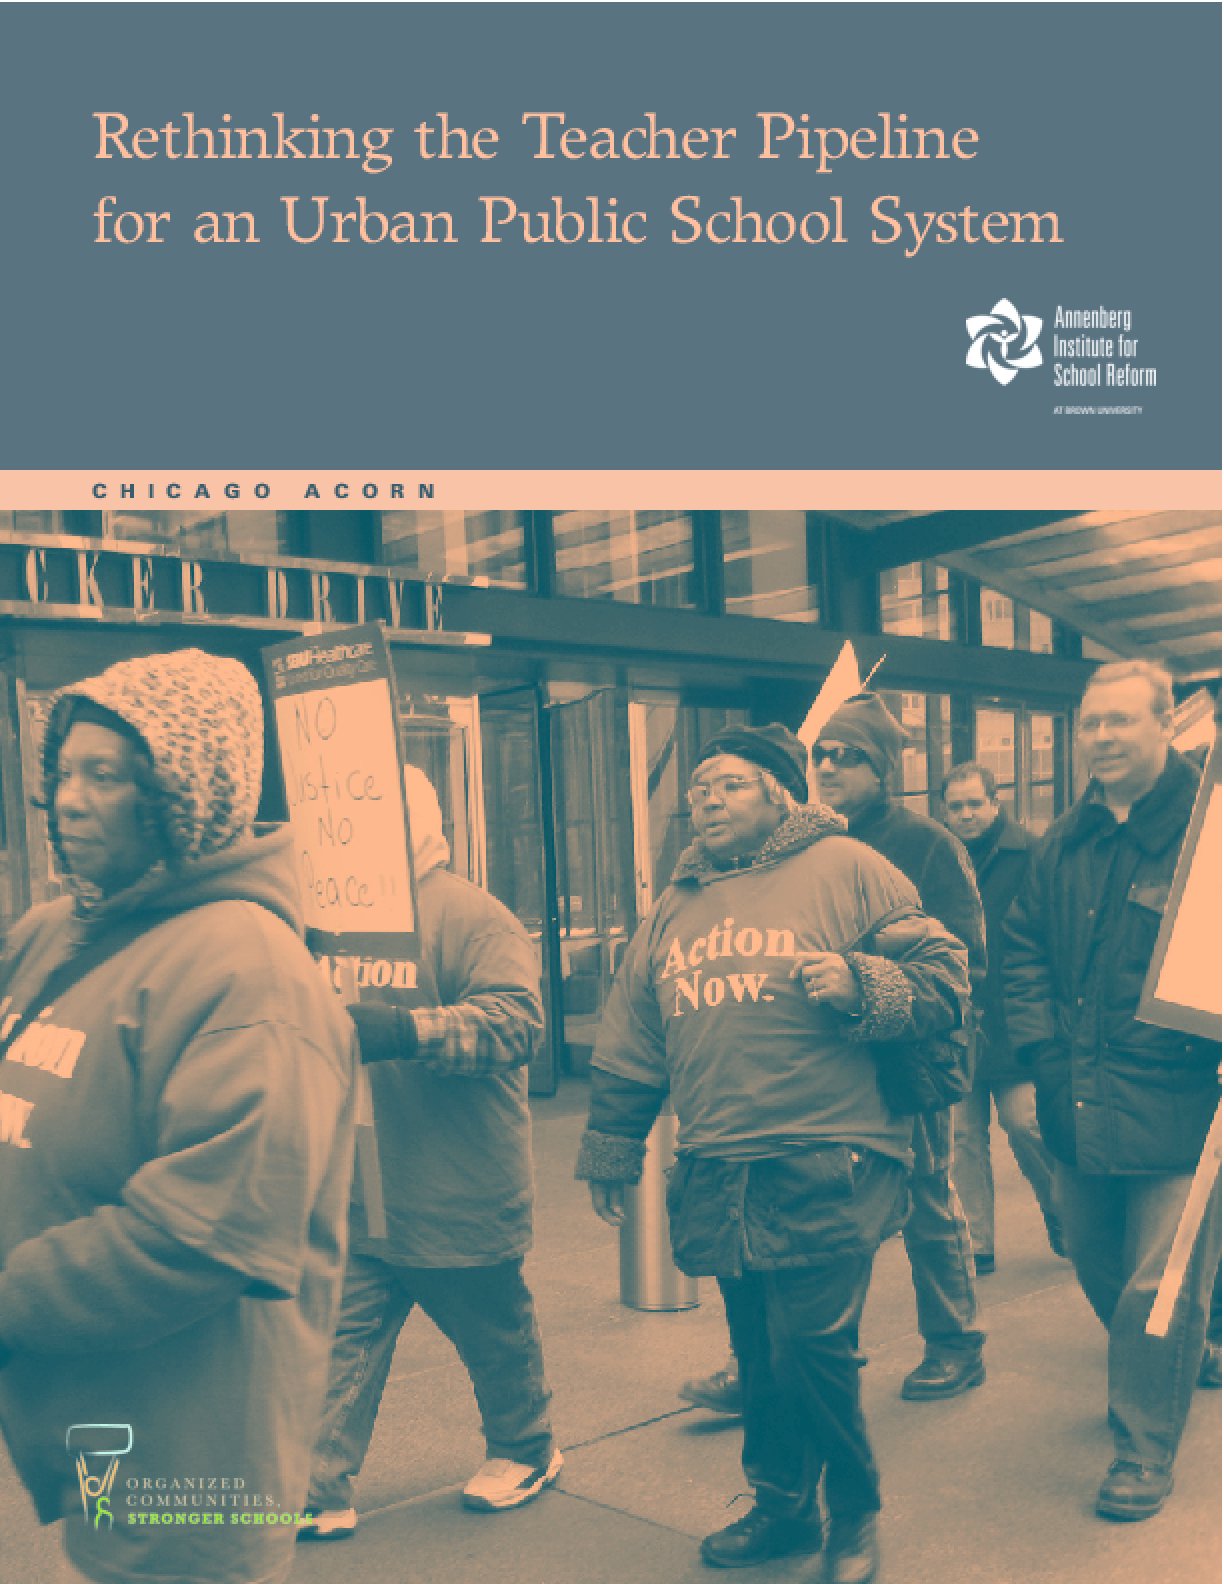 Rethinking the Teacher Pipeline for an Urban Public School System